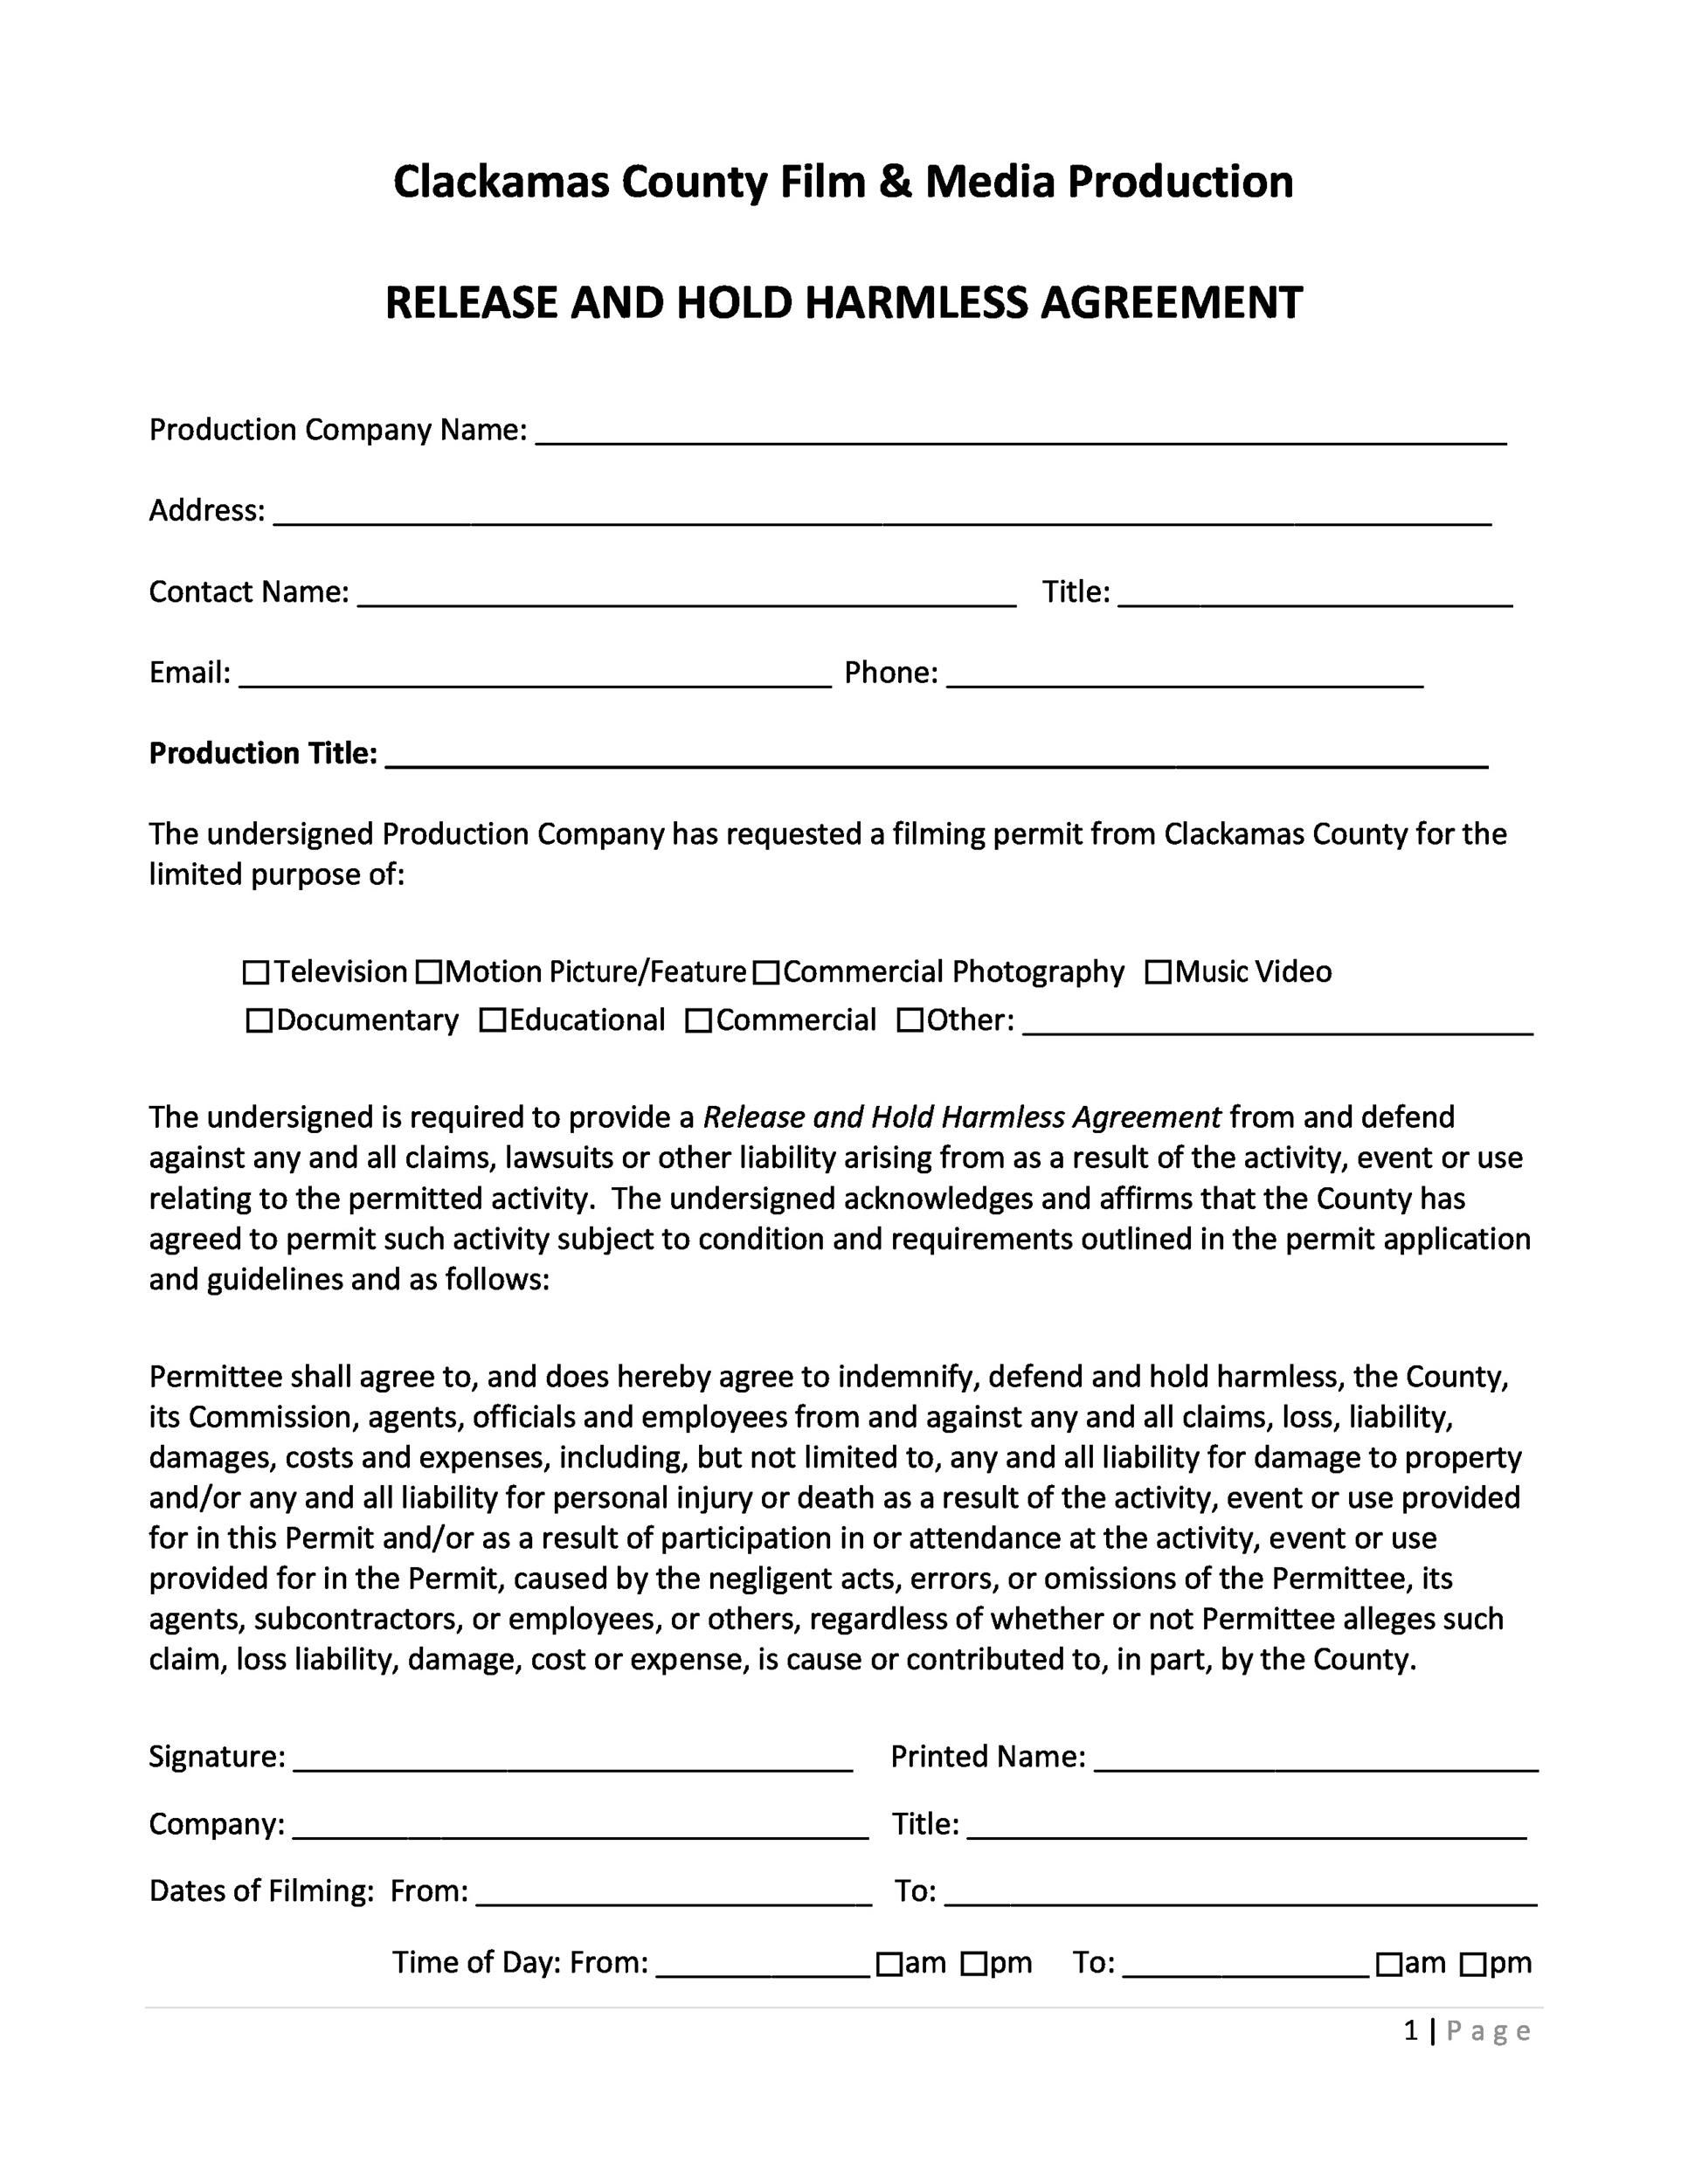 Hold Harmless Agreement Florida Template Picture In 2021 Hold On Agreement Templates Contractor hold harmless agreement template